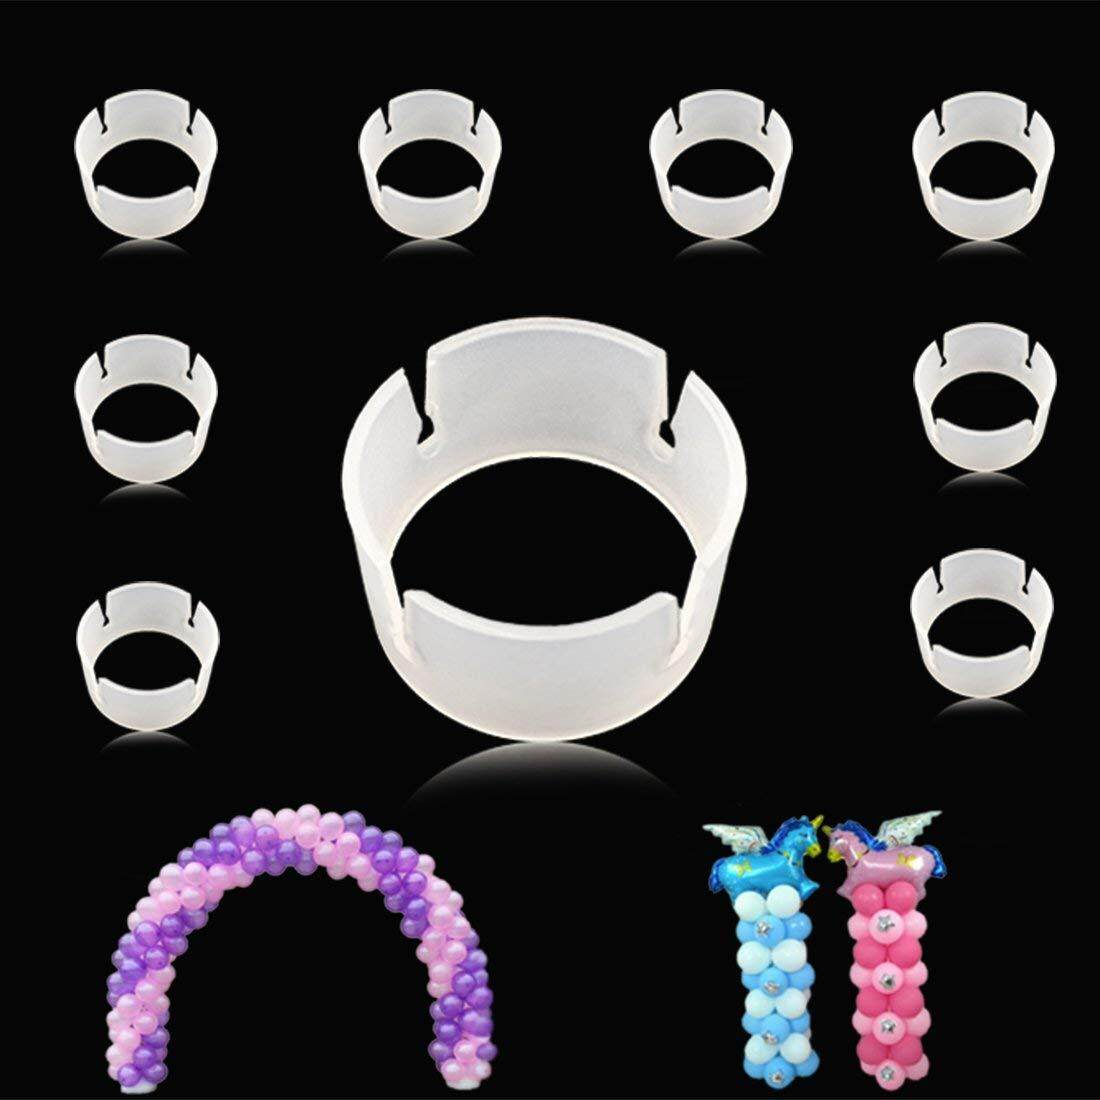 100pcs Balloon Ring Clips for Balloon Arch and Balloons Column Stand Party Decoration Accessory Balloon Buckle